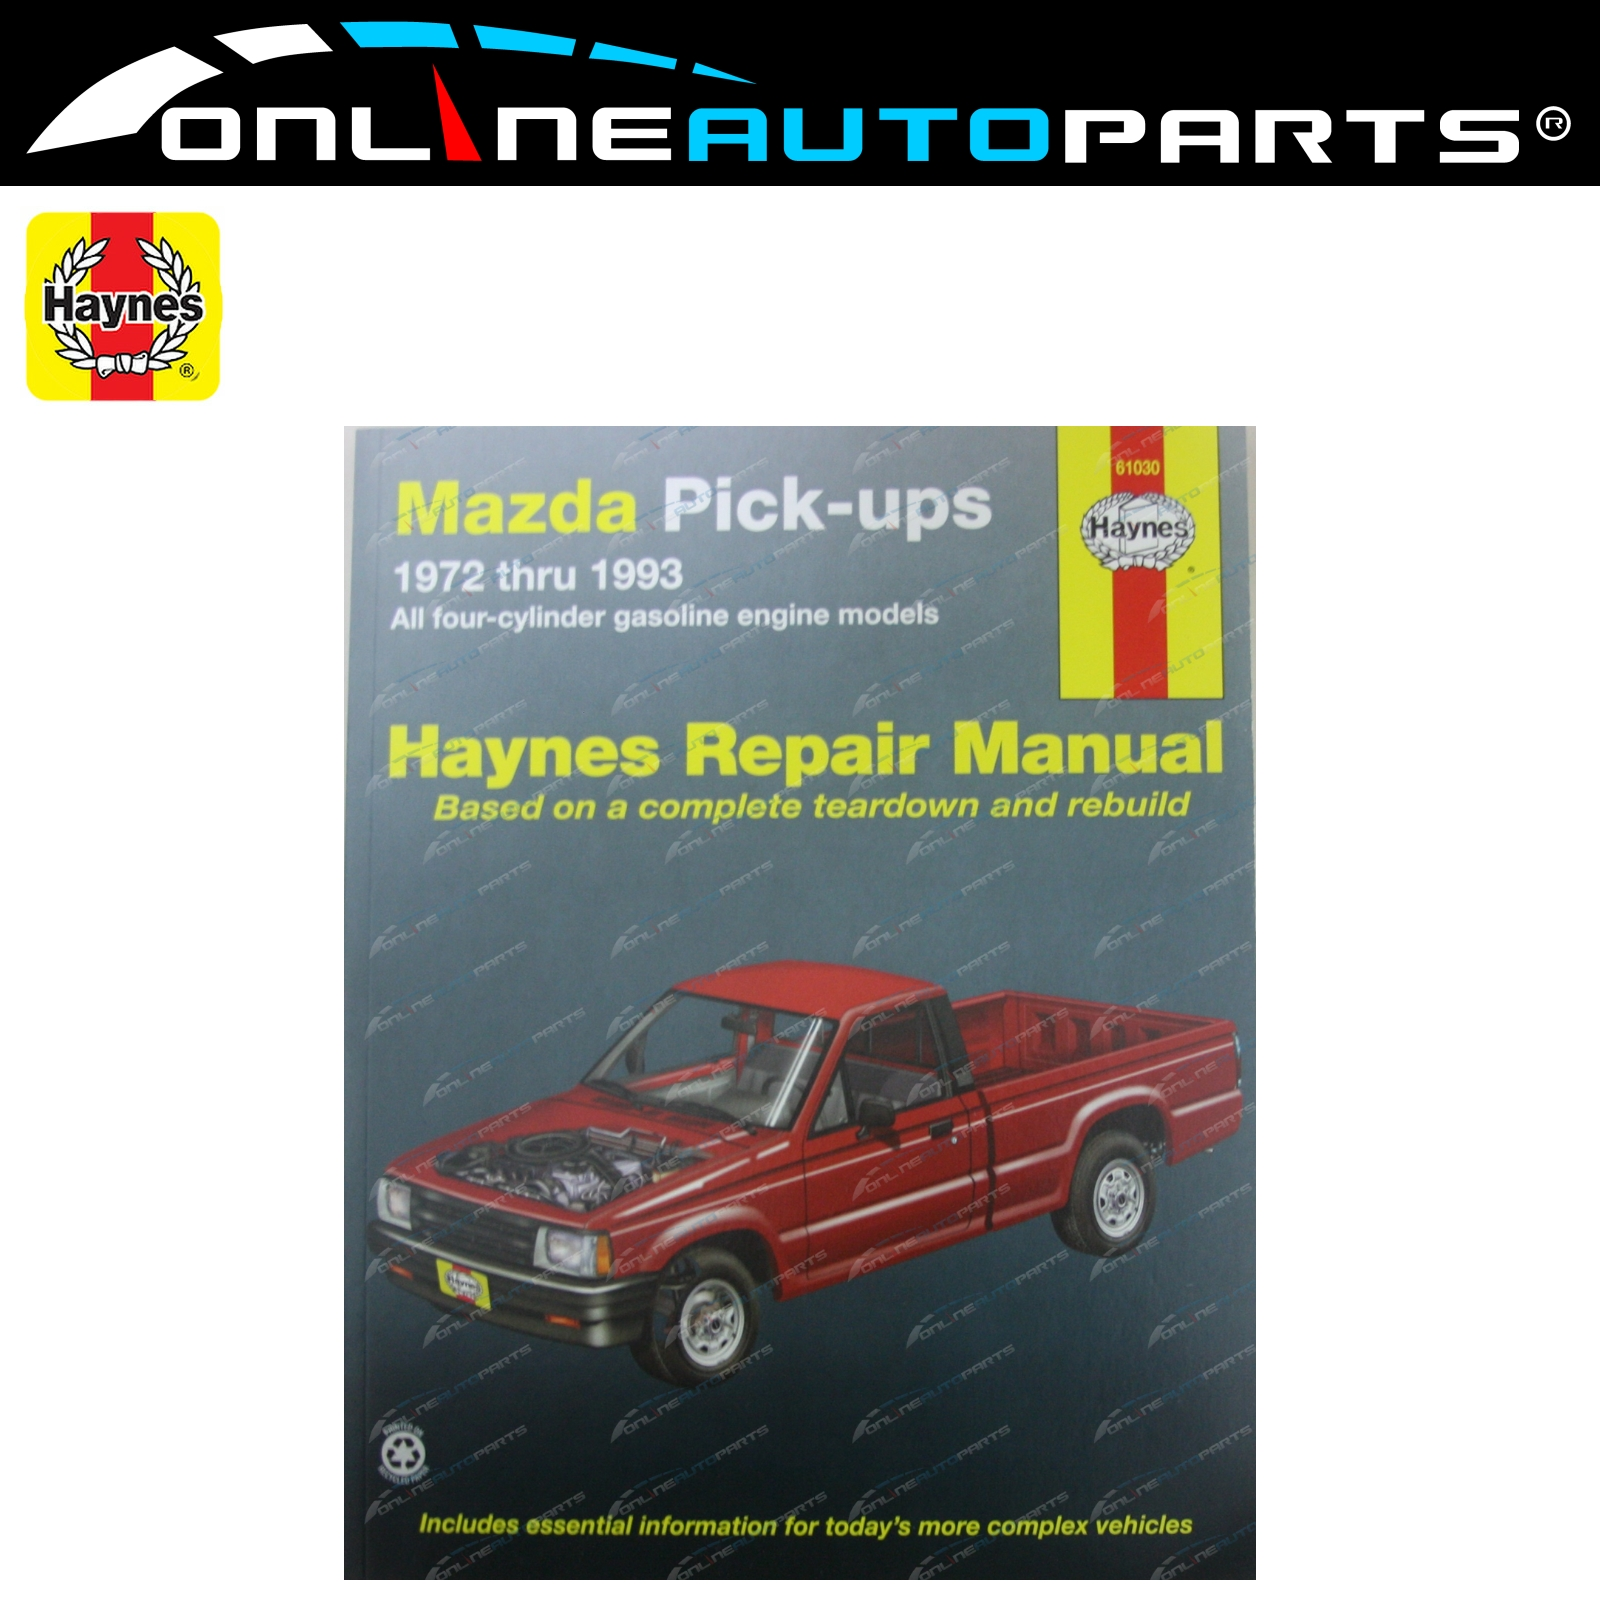 Haynes Car Repair Manual Book Mazda Pickup 1971-93 B1600 B1800 B2000 B2600  Ute